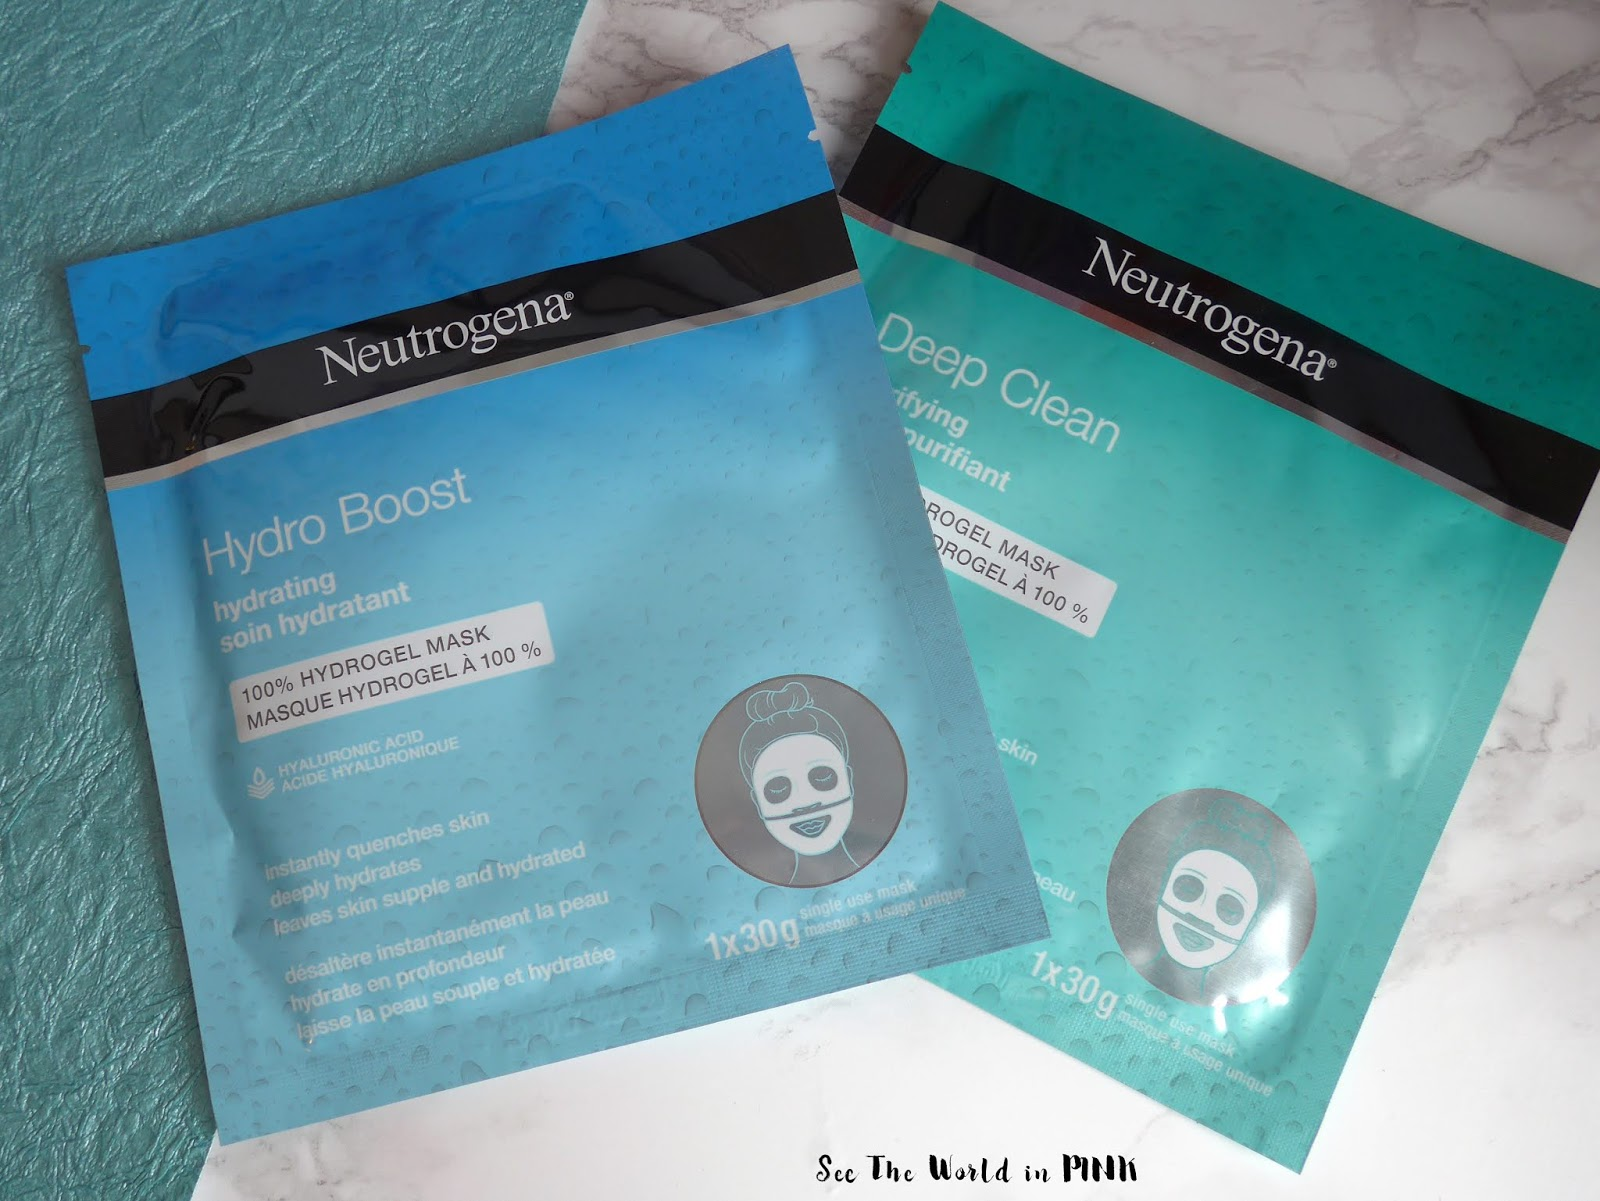 Neutrogena Hydrogel Masks - Hydro Boost Hydrating & Deep Clean Purifying!